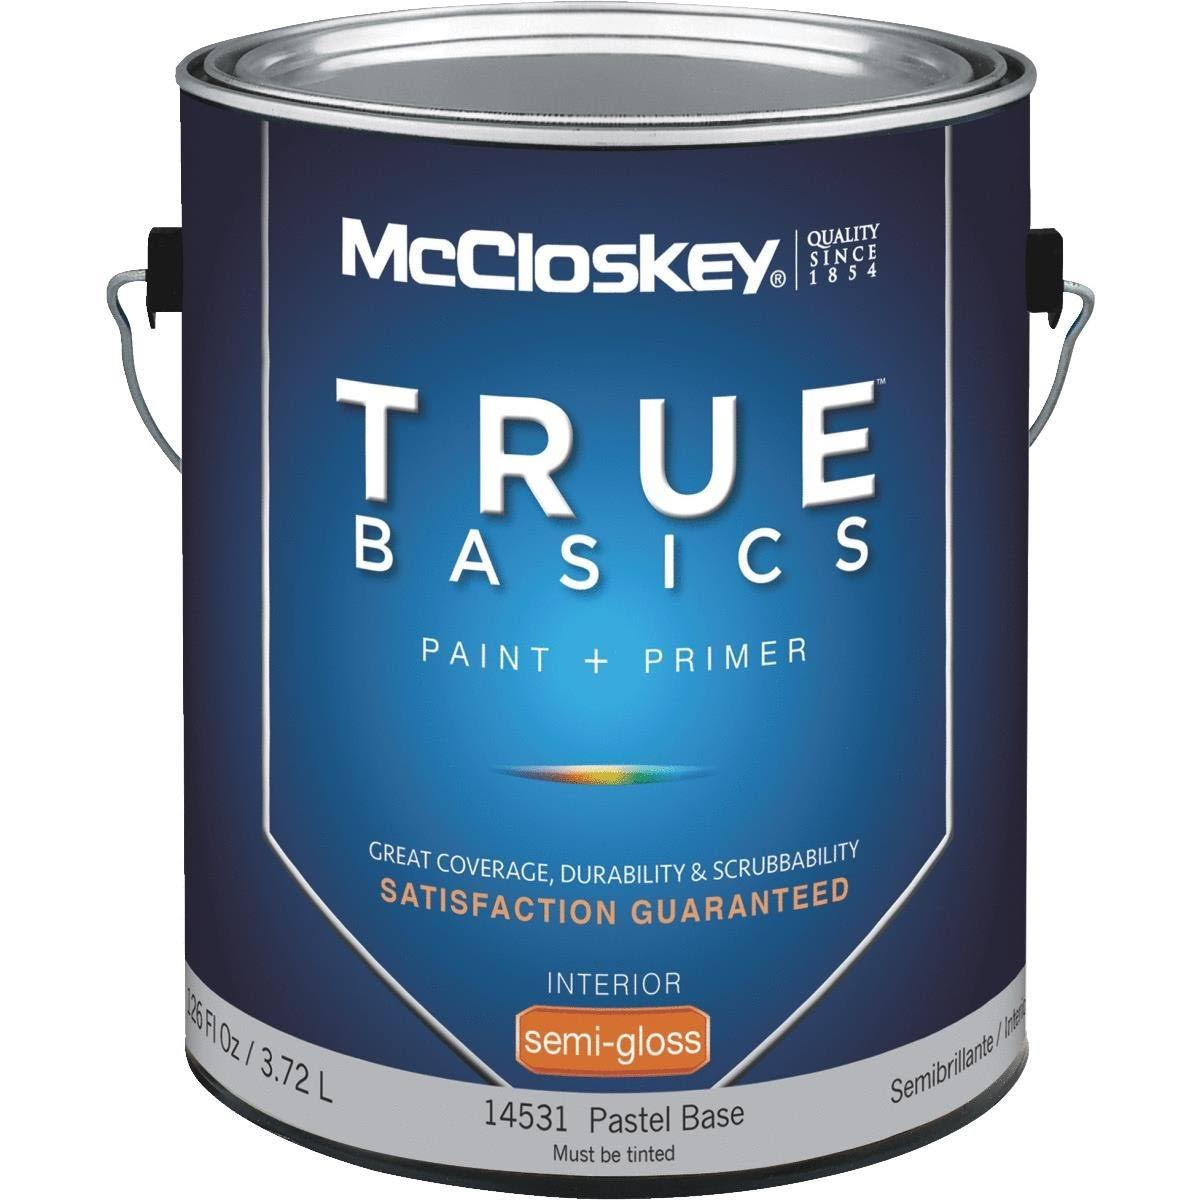 McCloskey 14531 True Basics Latex Paint & Primer Semi-Gloss Interior Wall Paint - Pastel Base, 1gal